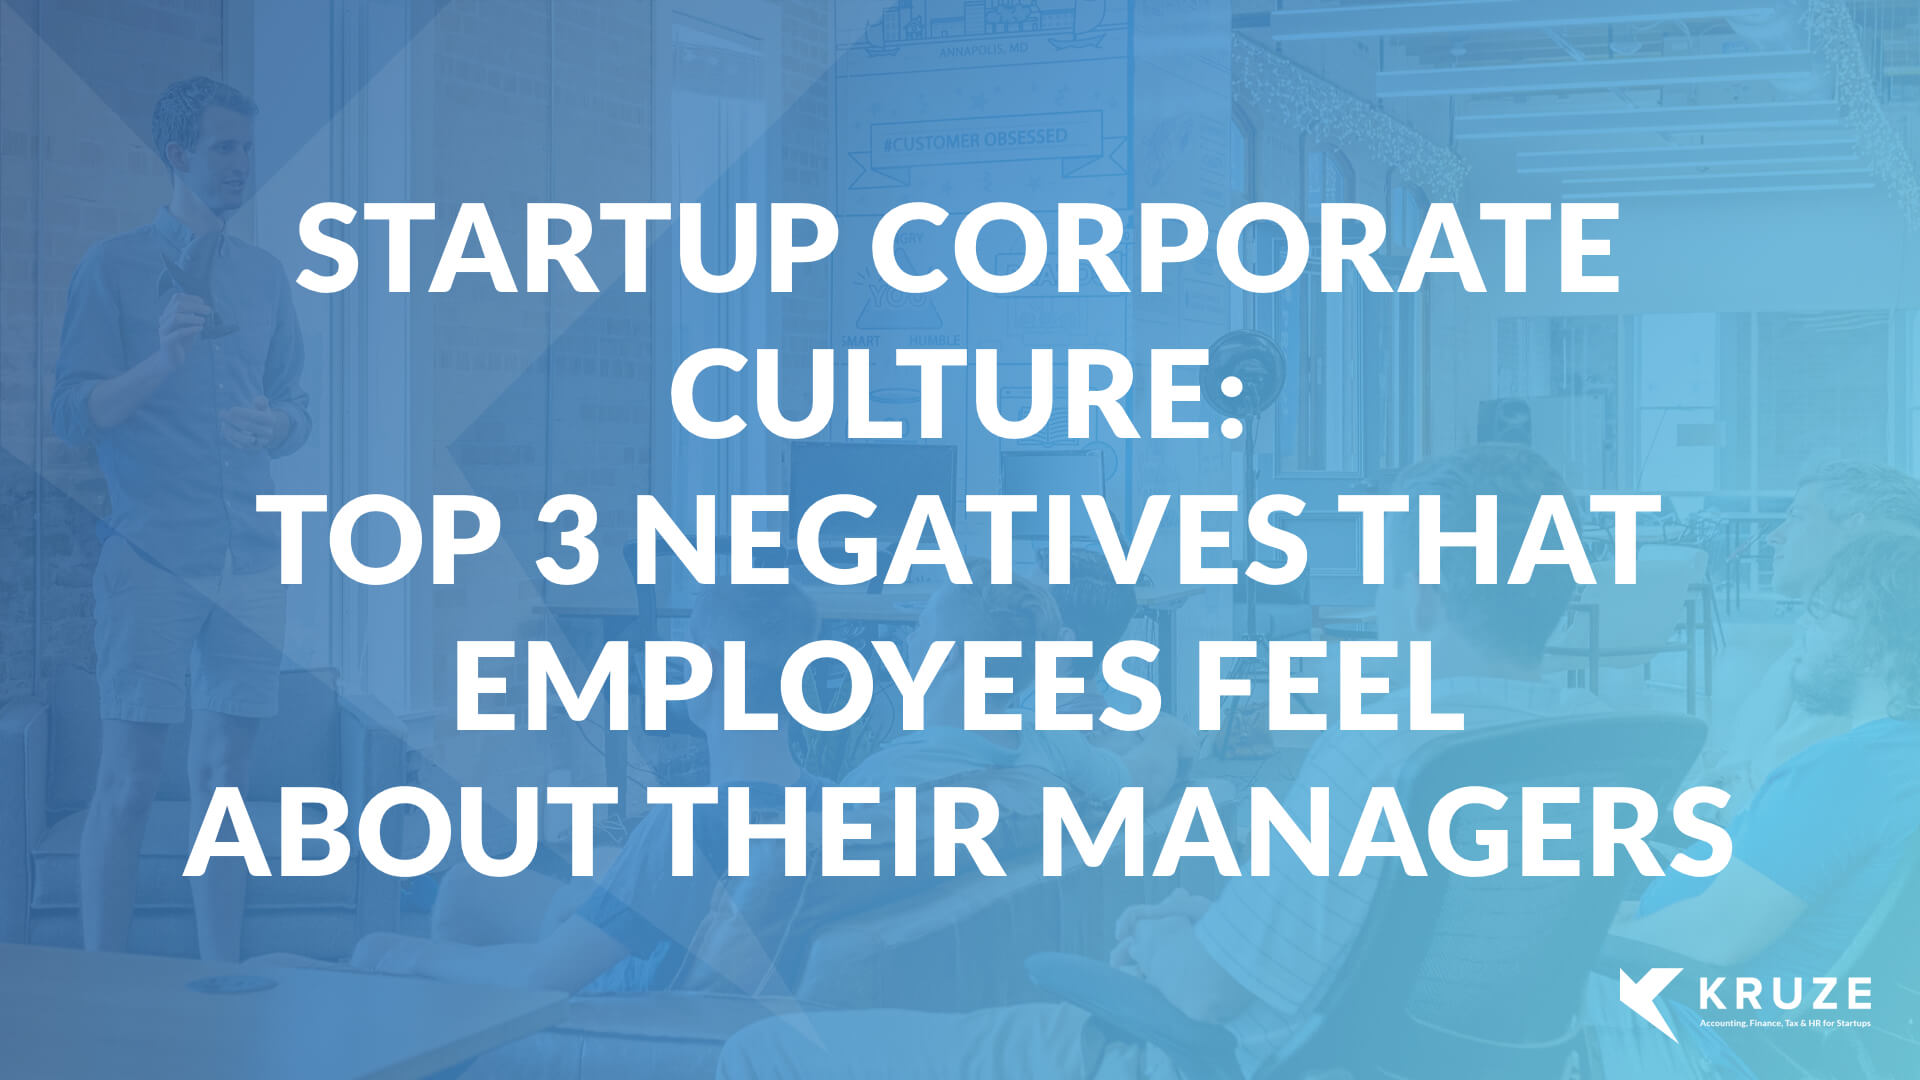 Top three negatives that employees feel about their bosses